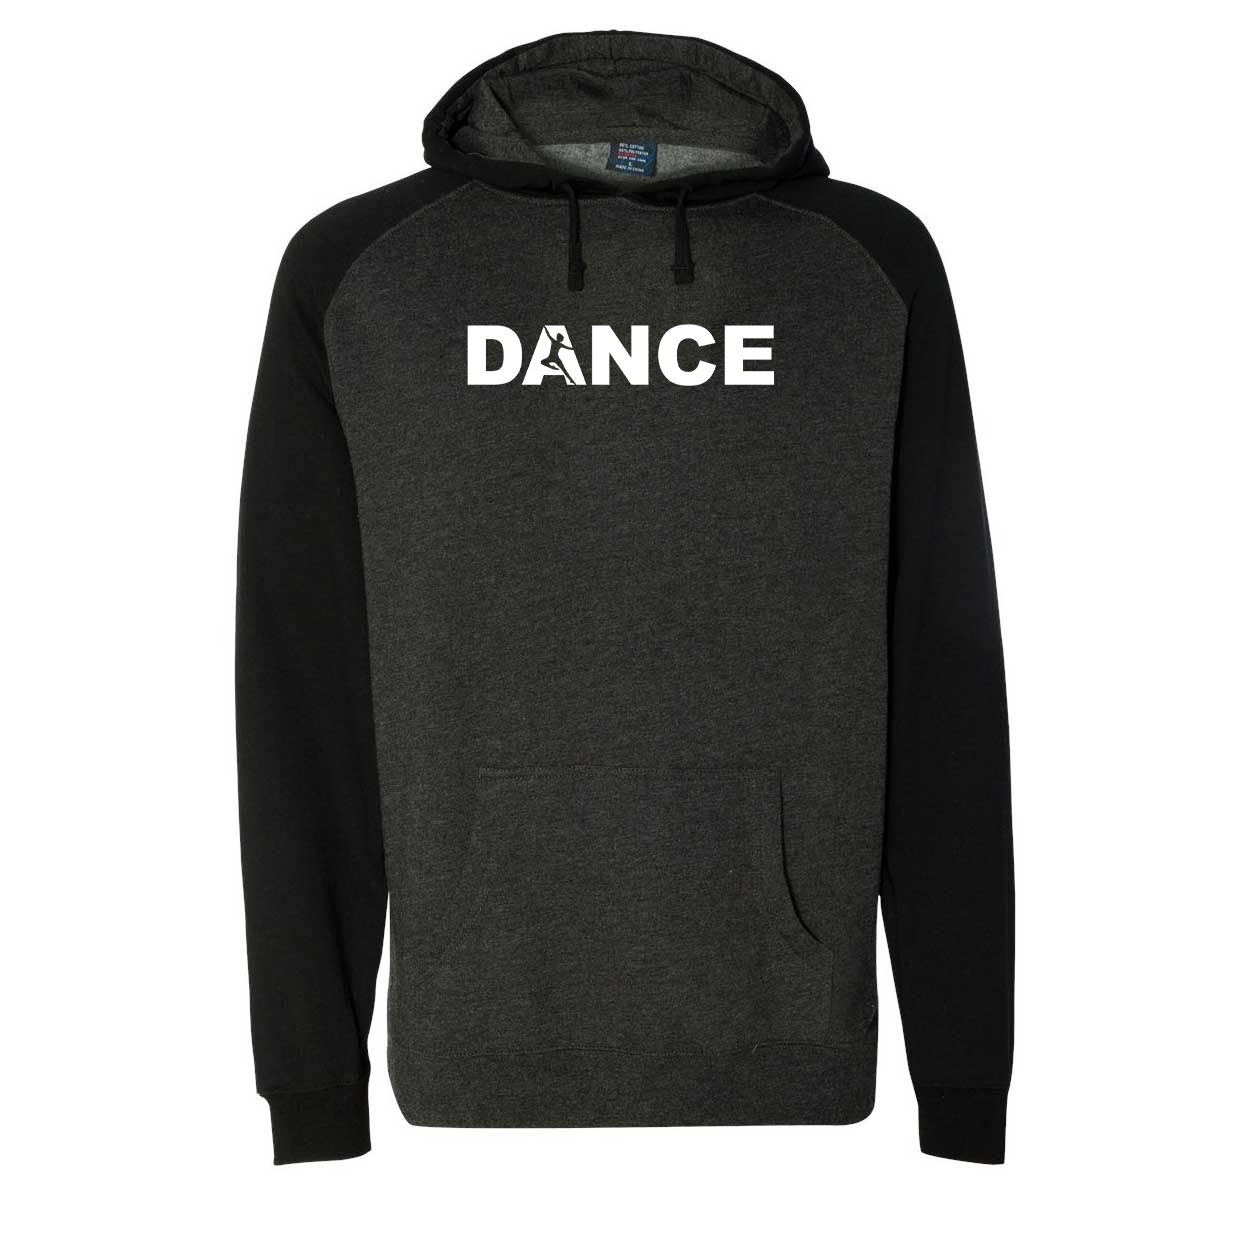 Dance Silhouette Logo Classic Raglan Hooded Pullover Sweatshirt Charcoal/Heather Black (White Logo)